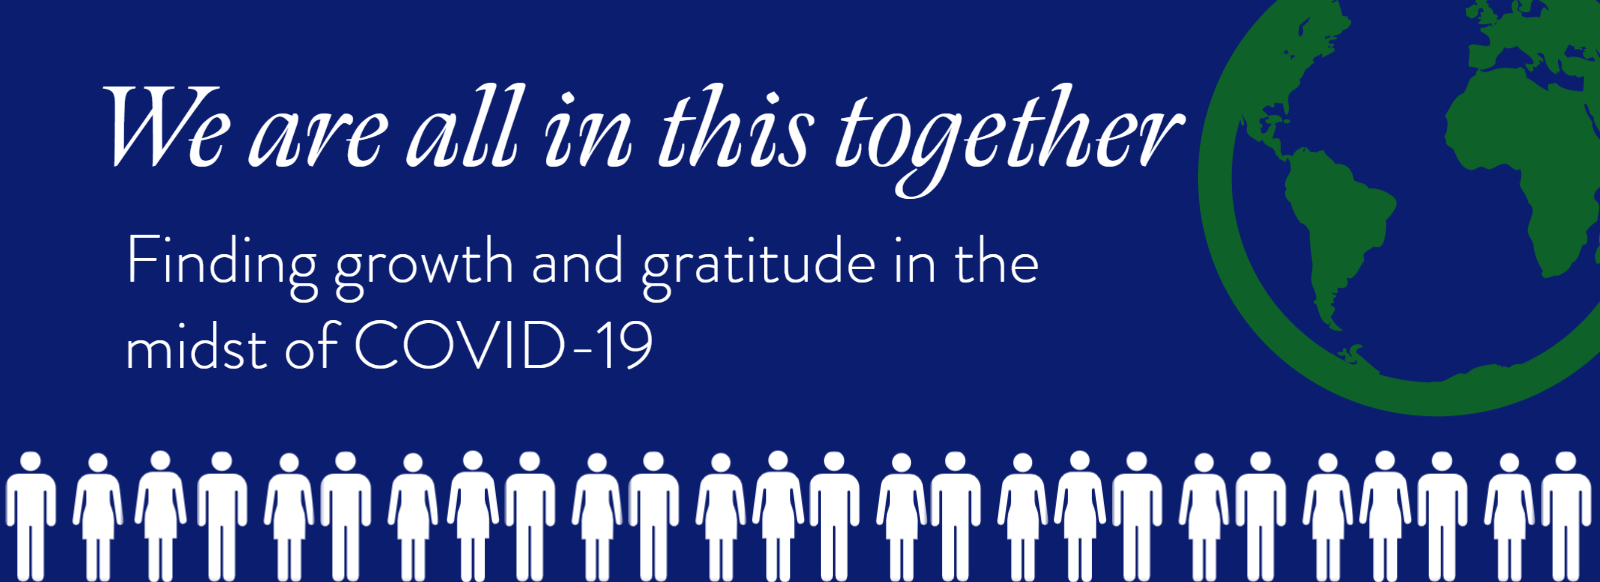 We are all in this together: Finding growth and gratitude in the midst of COVID-19